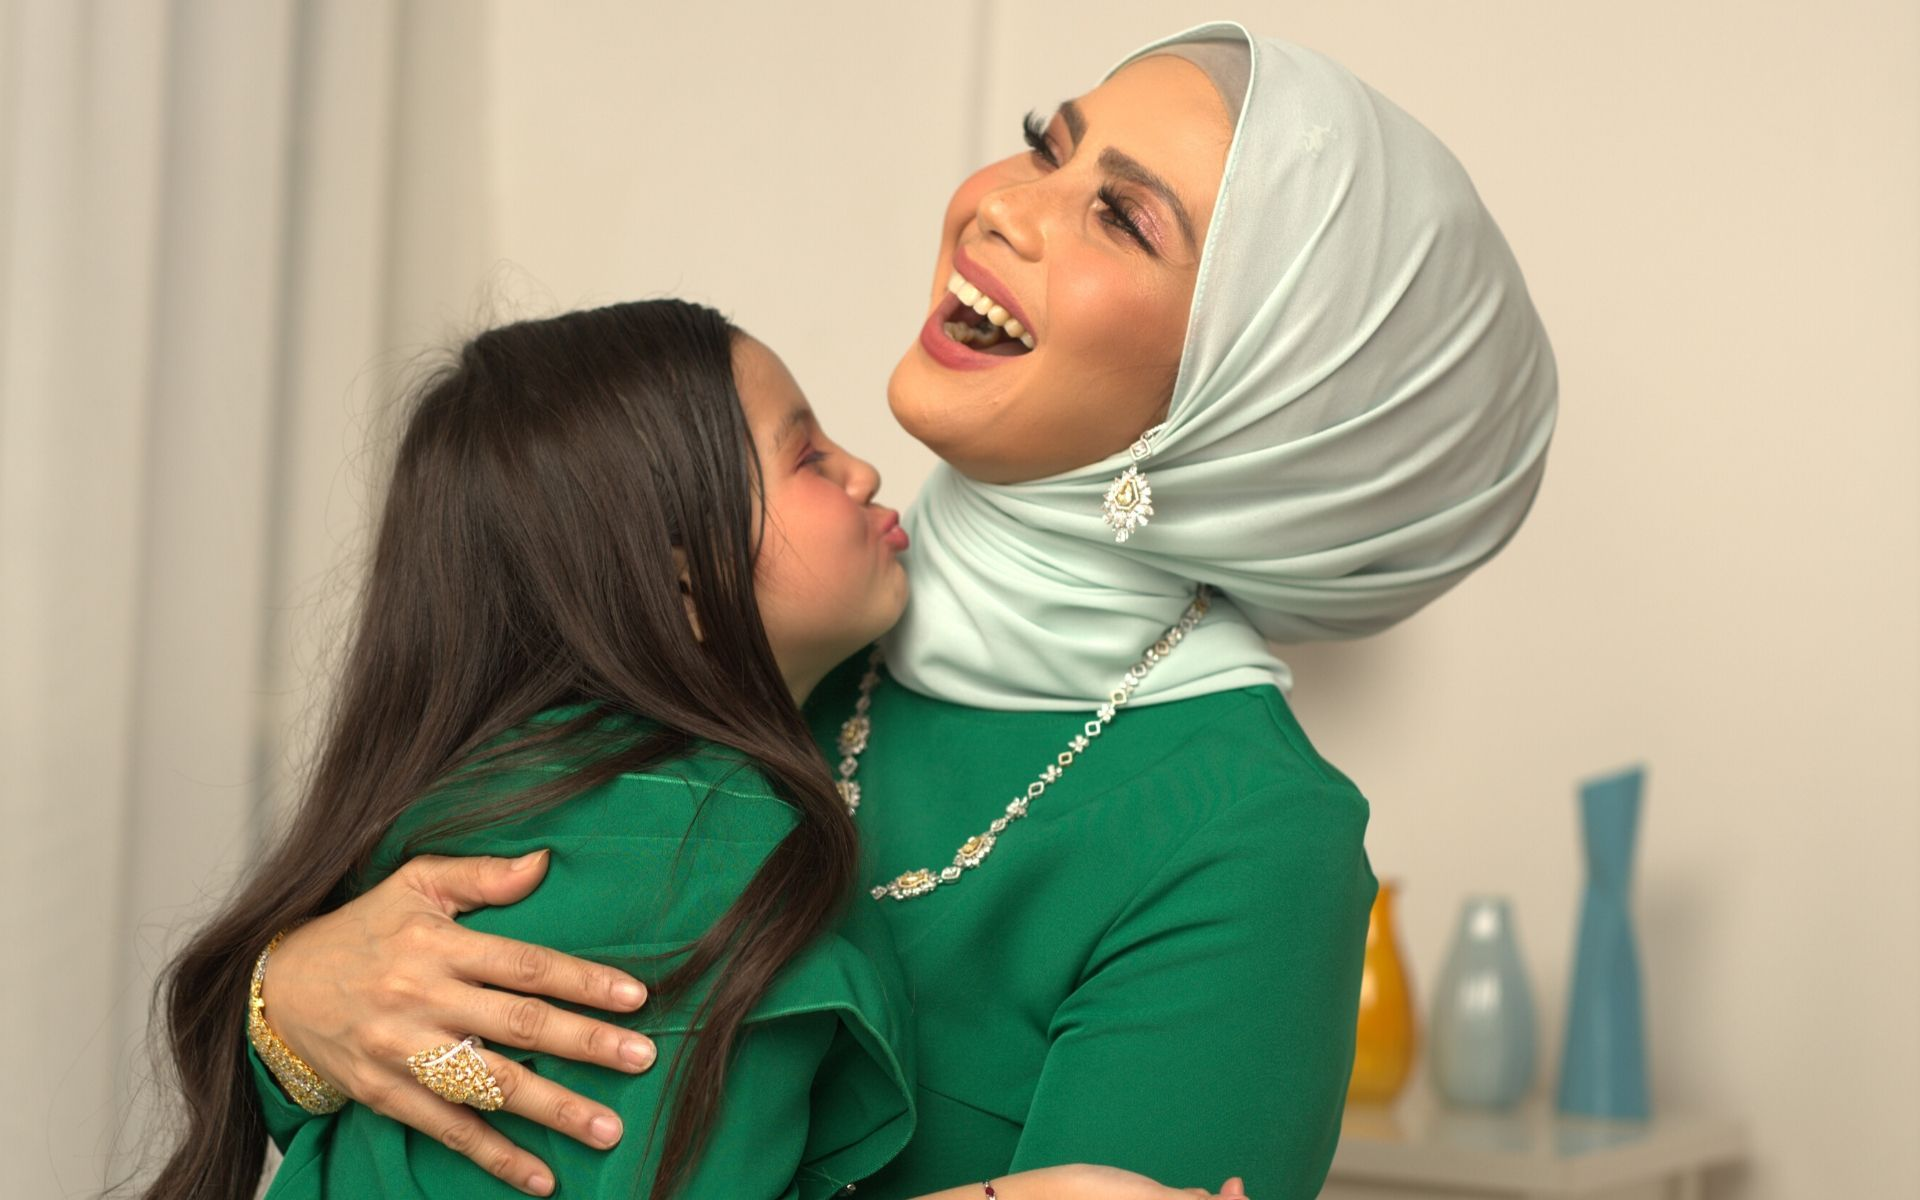 Habib's brand ambassador Rozita Che Wan and daughter Aaisyah Dhia Rana. (Photo: Habib)